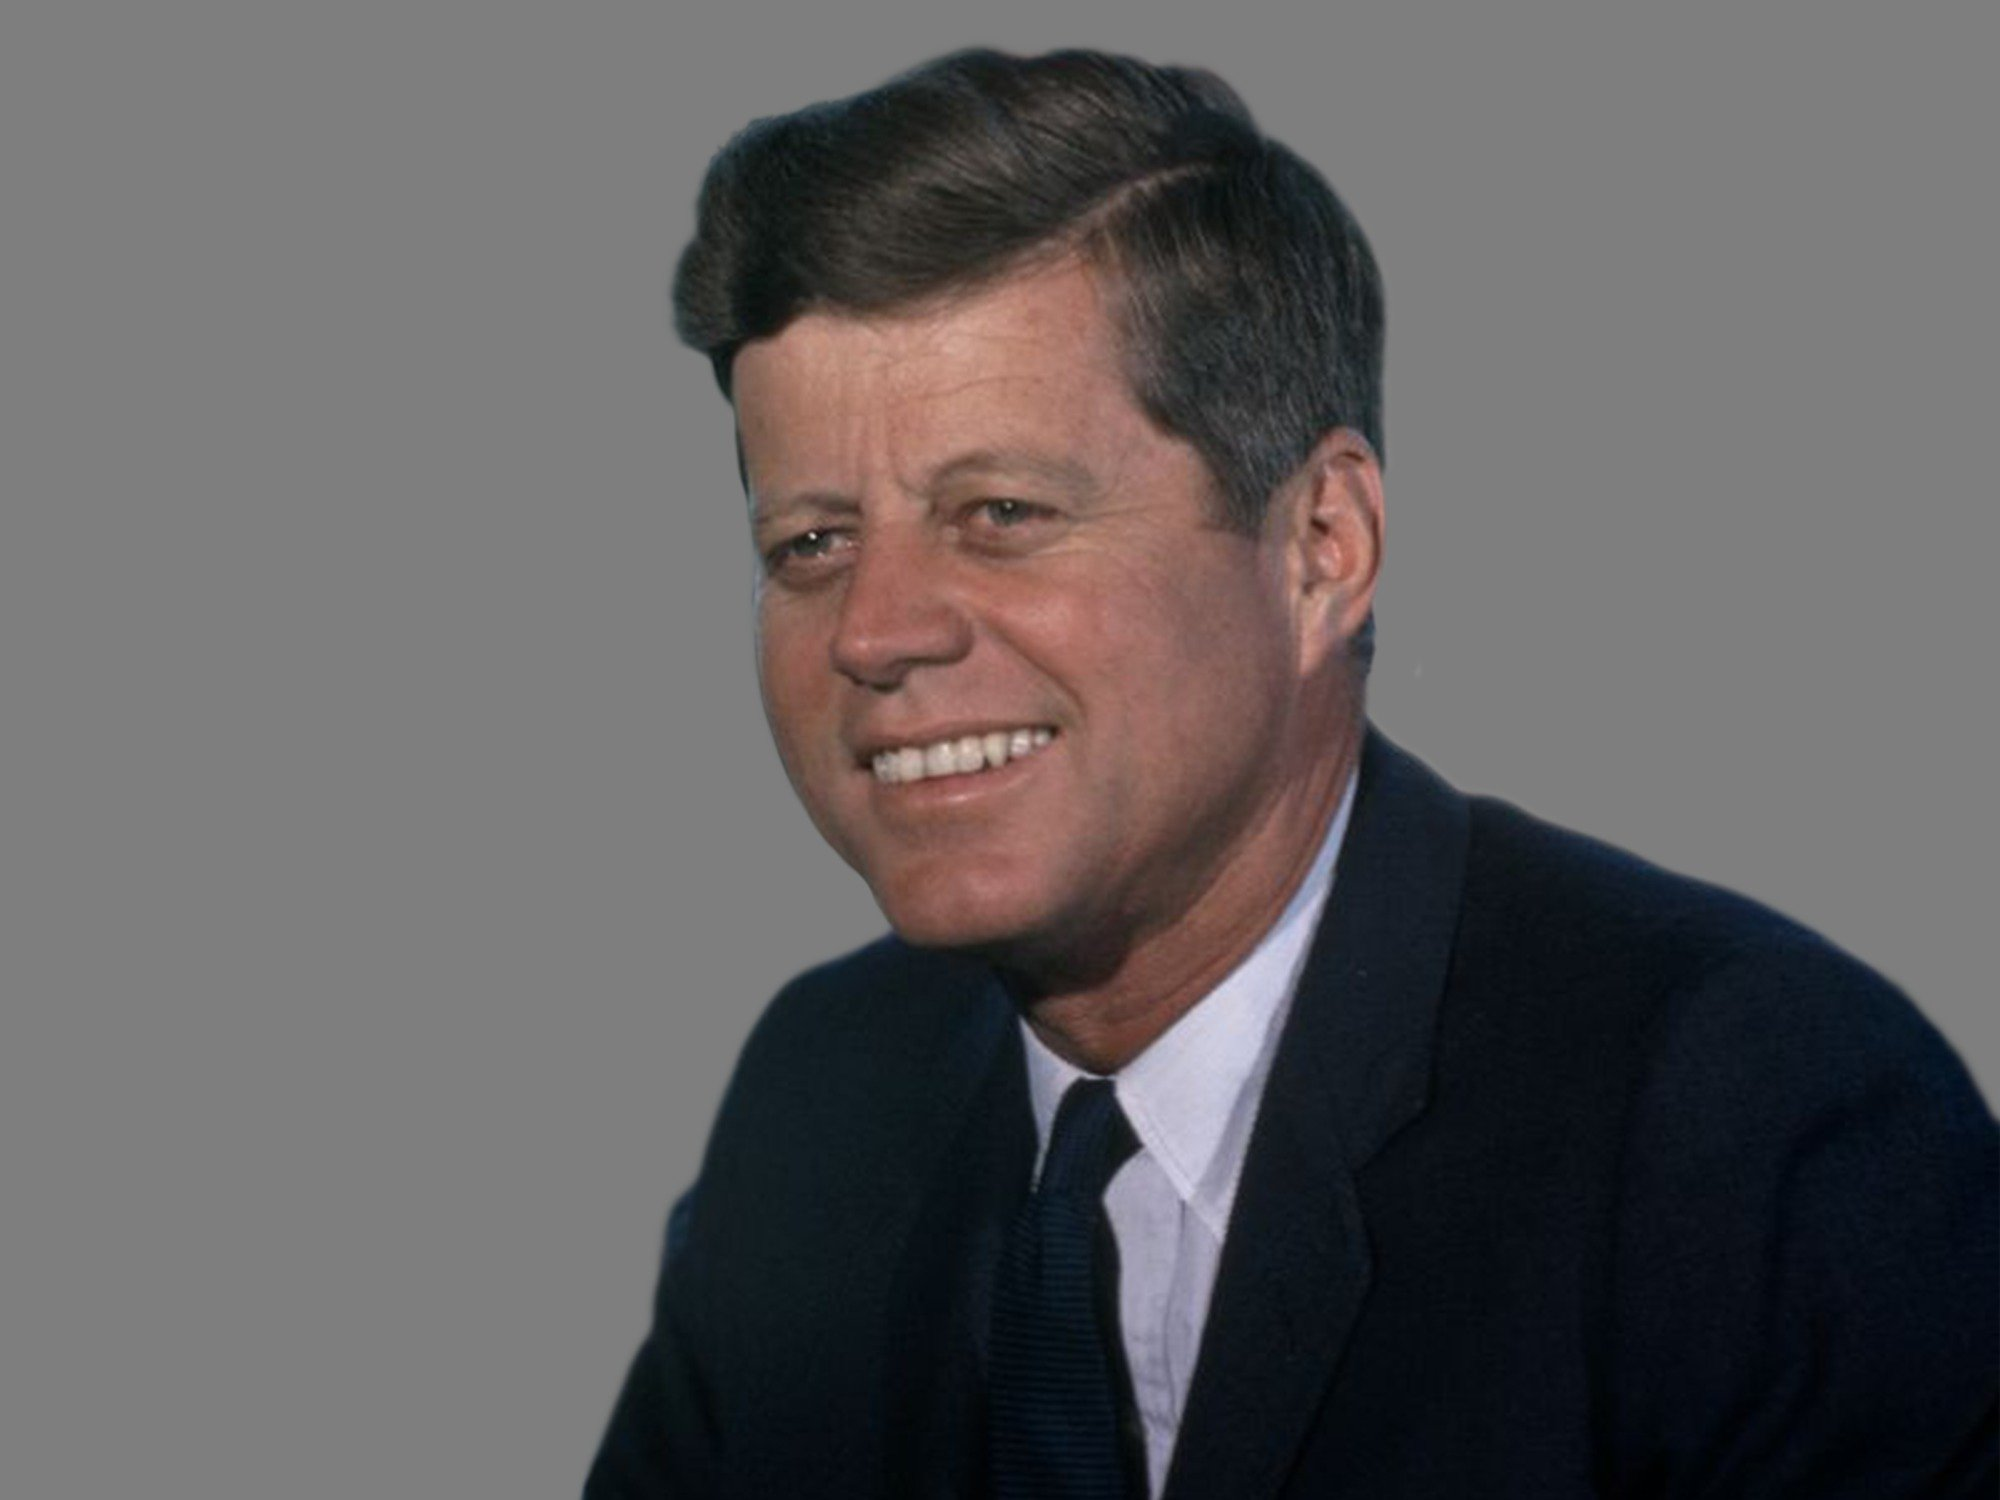 John F. Kennedy headshot, as 35th US President, official White House portrait via JFK Presidential Library and Museum